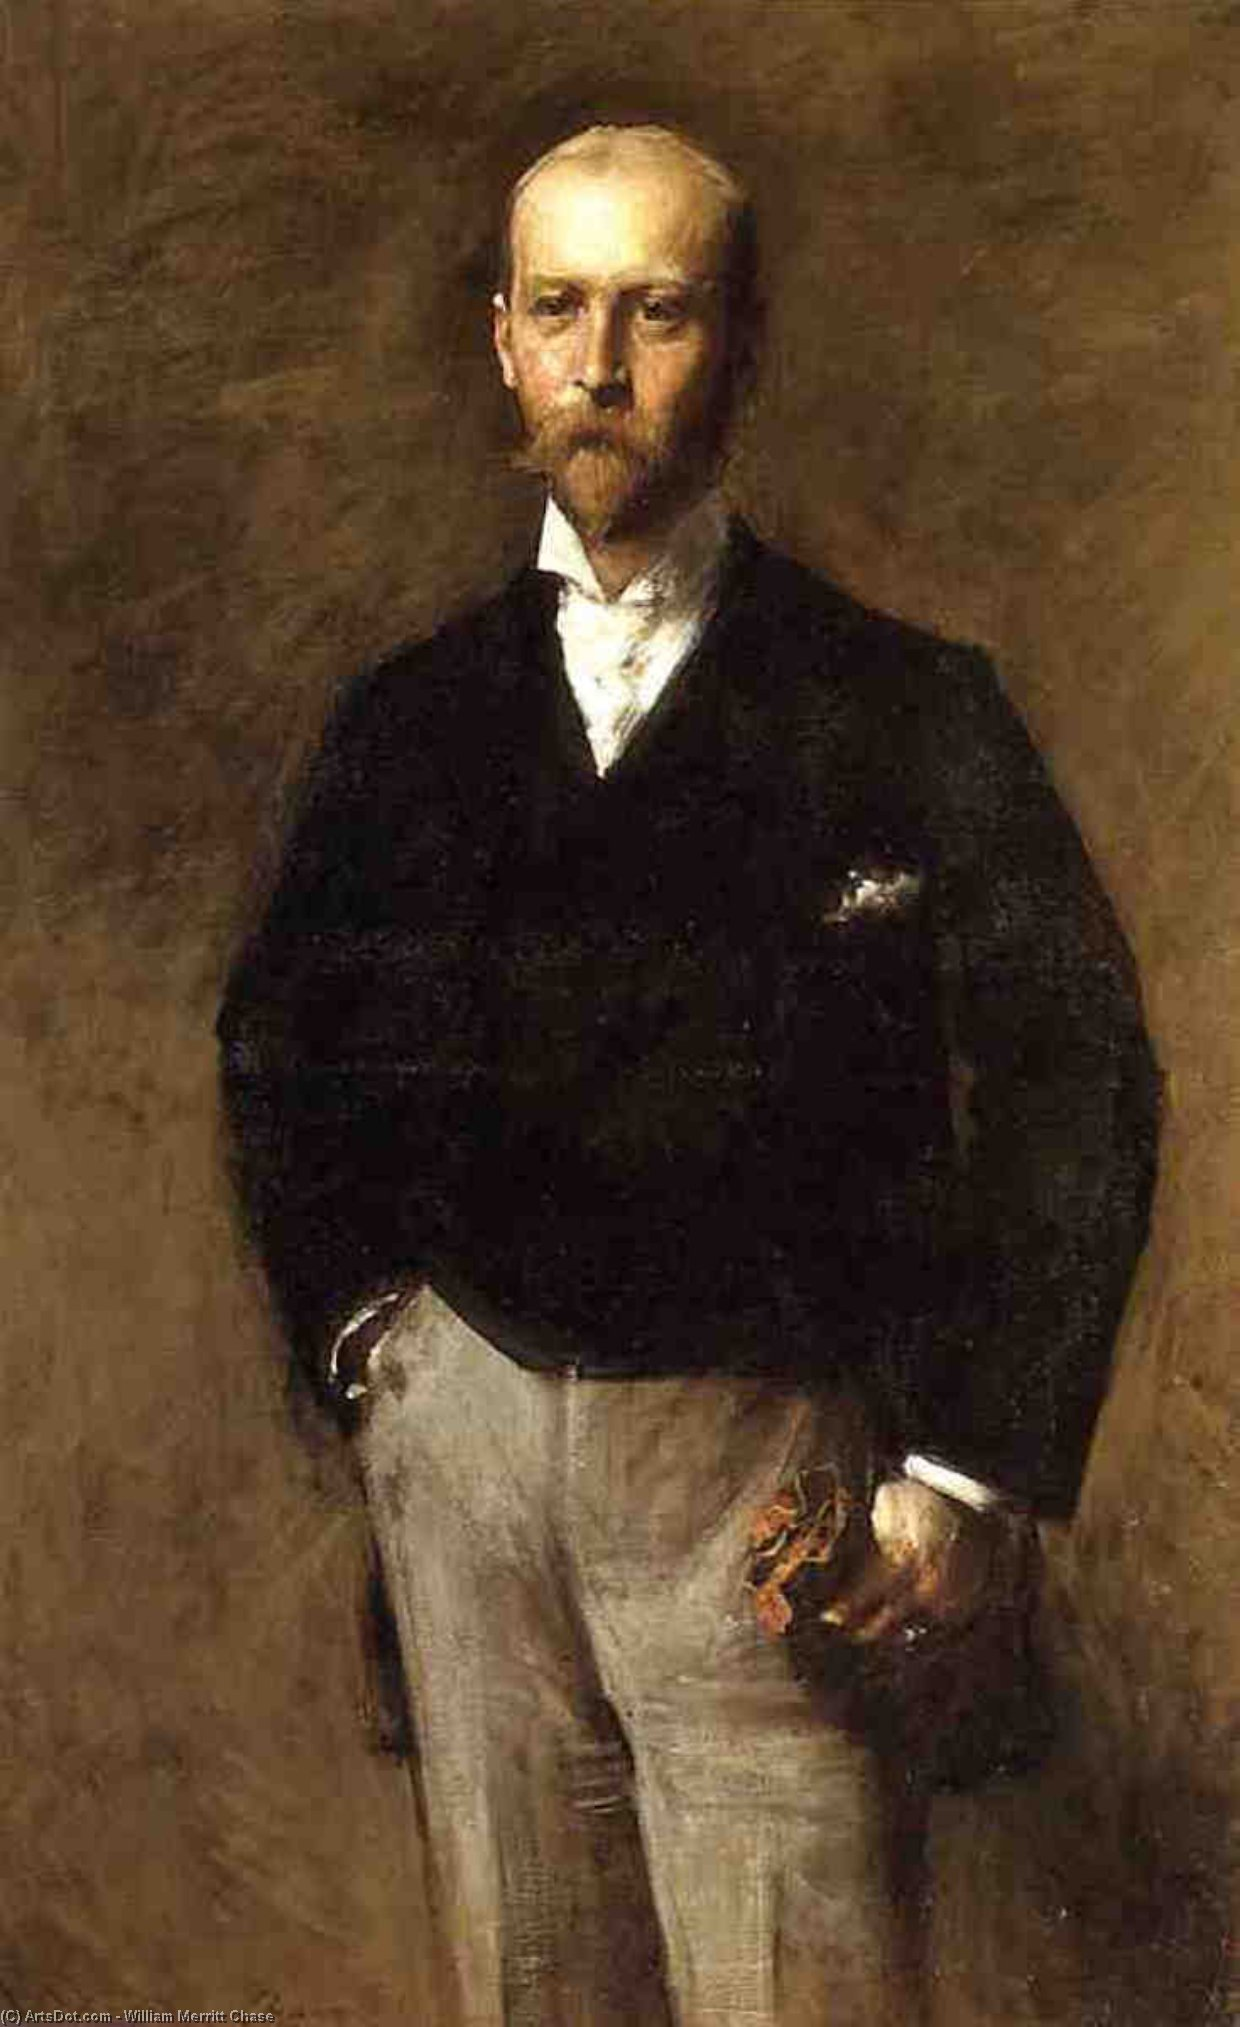 Botas retrato de william charles le gendre, óleo sobre lienzo de William Merritt Chase (1849-1916, United States)